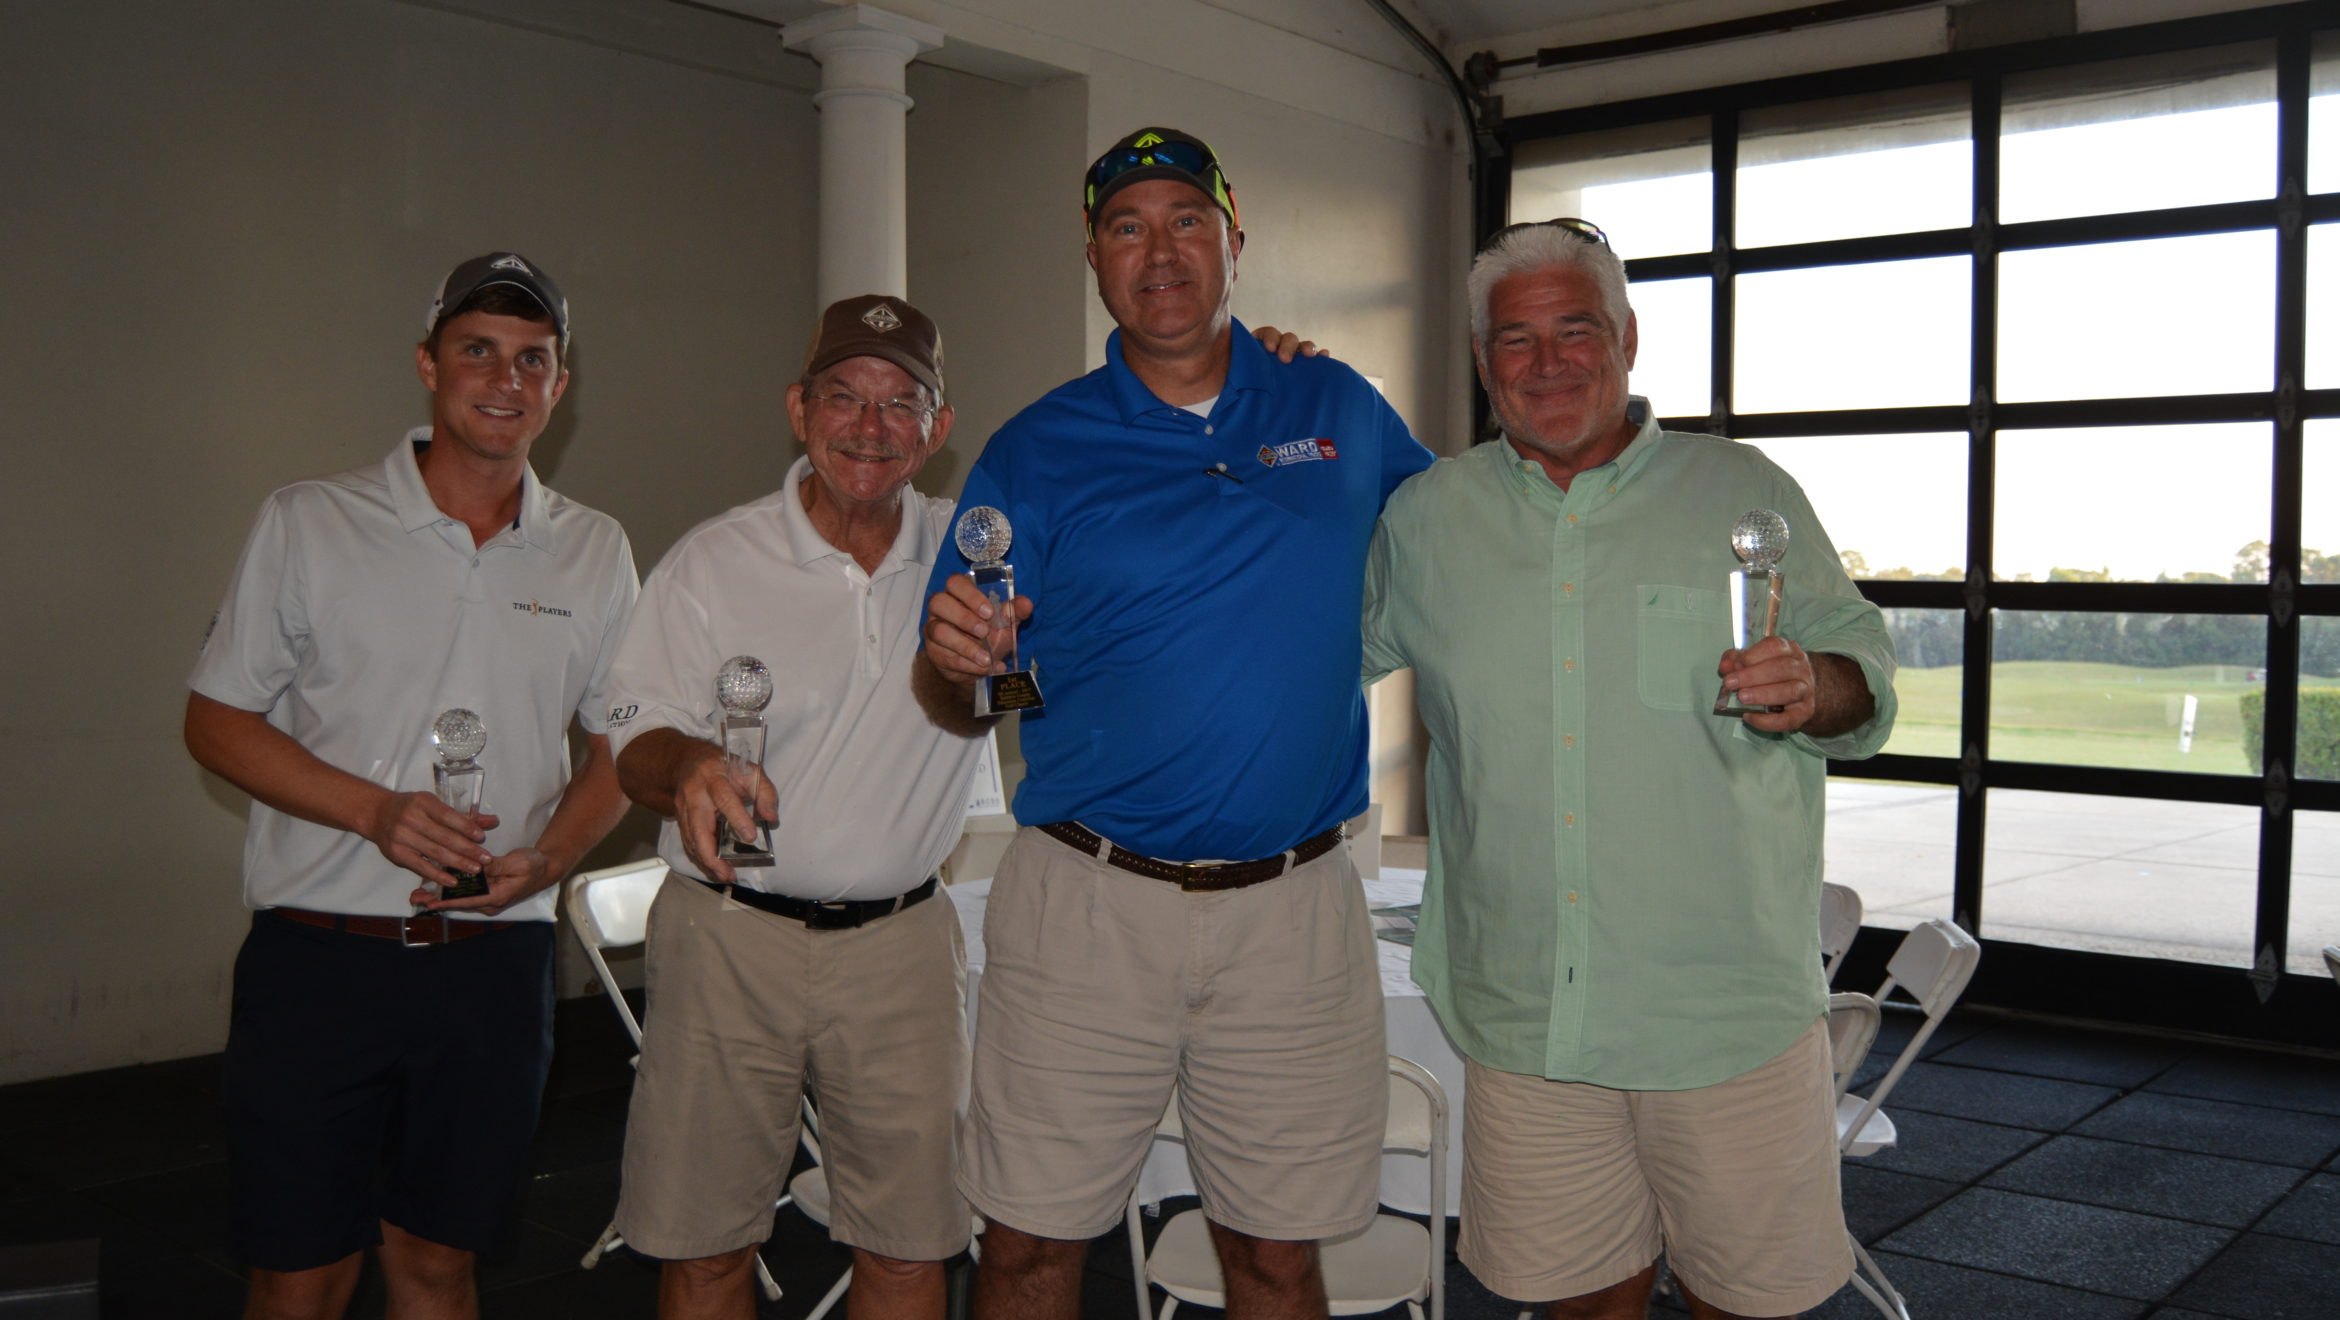 Fifth Annual Golf Classic